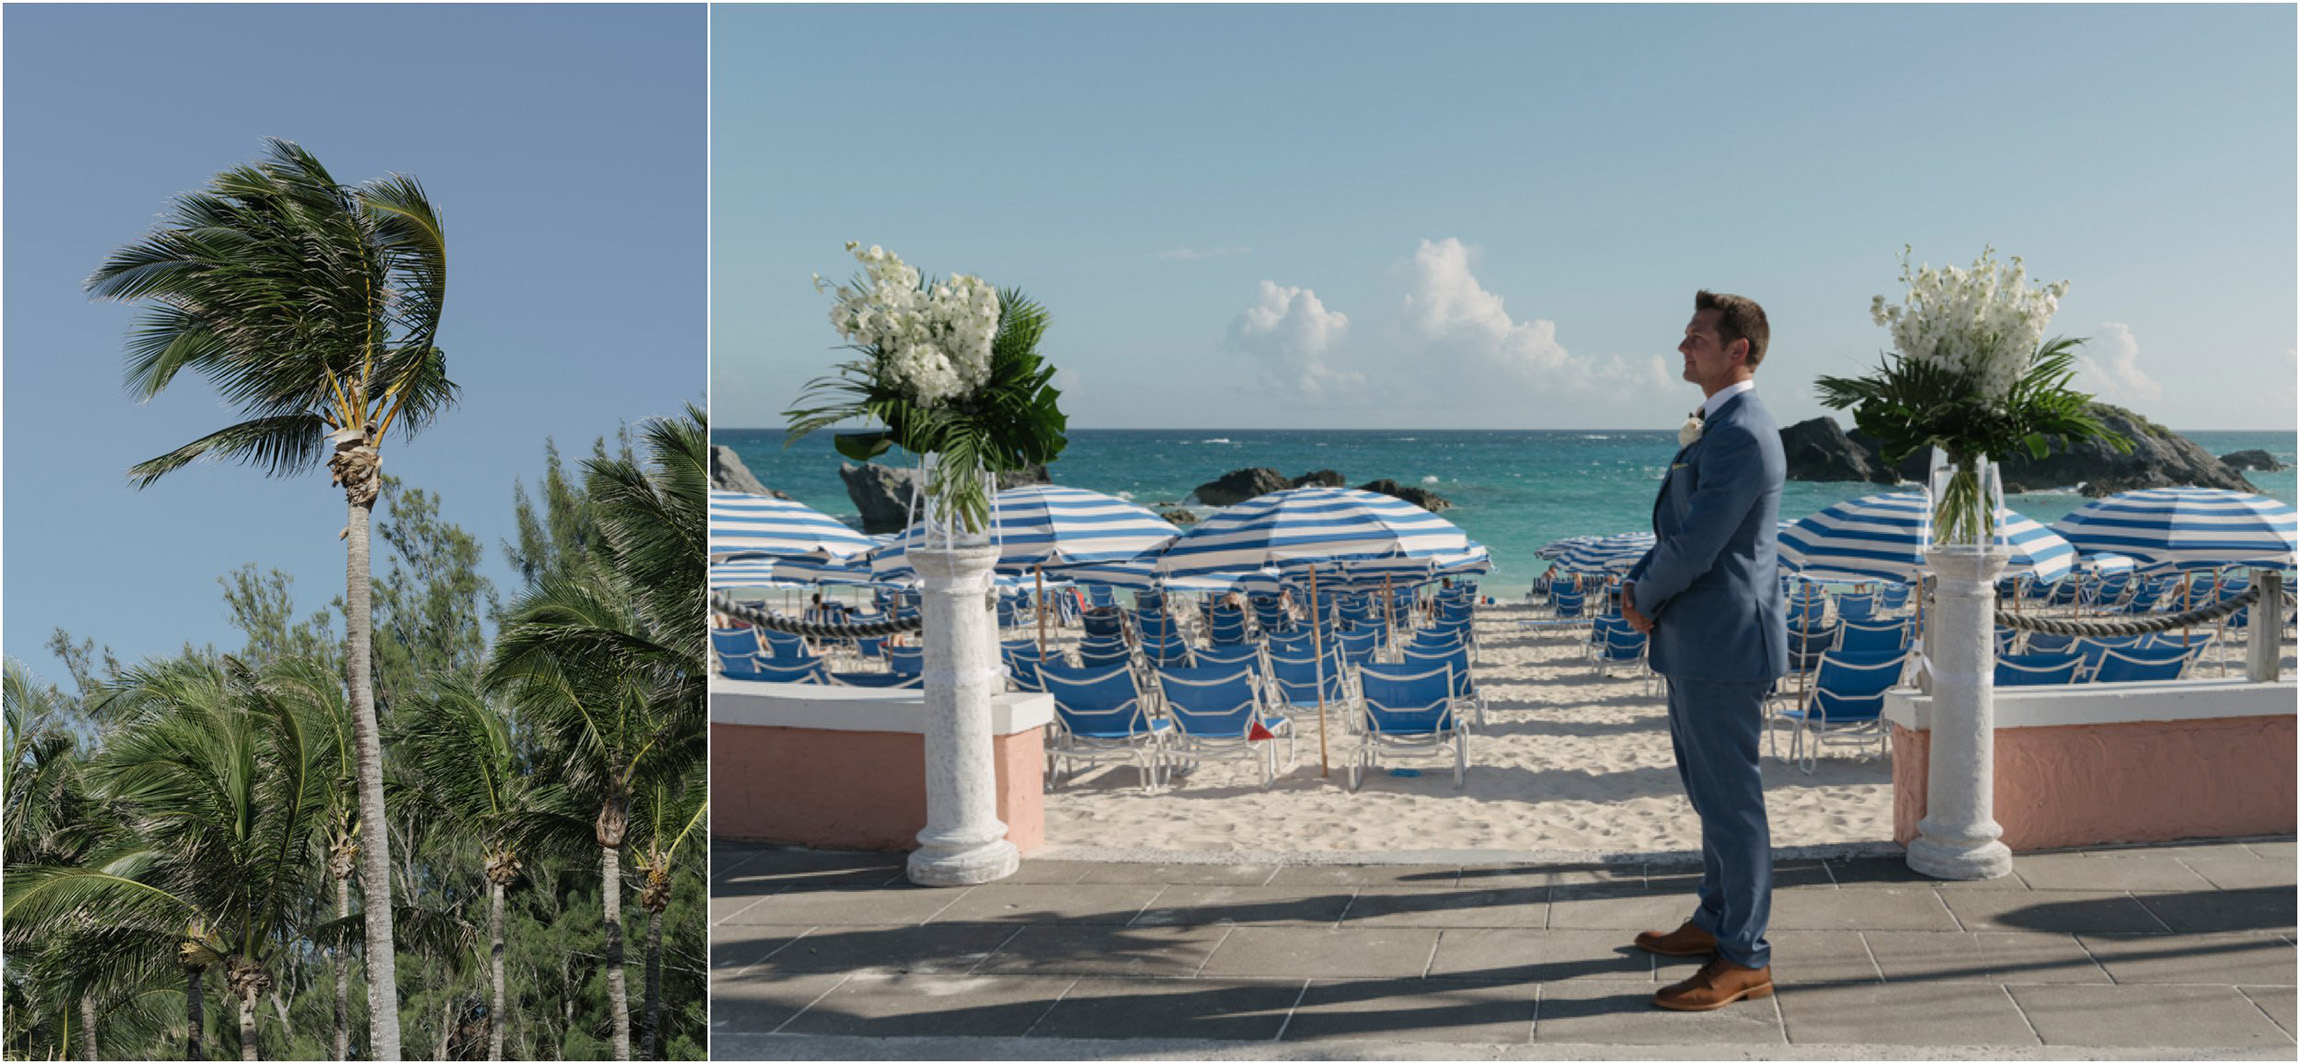 ©FianderFoto_Bermuda Wedding Photographer_Fairmont Southampton_Wedding_Anna_Thomas_042.jpg